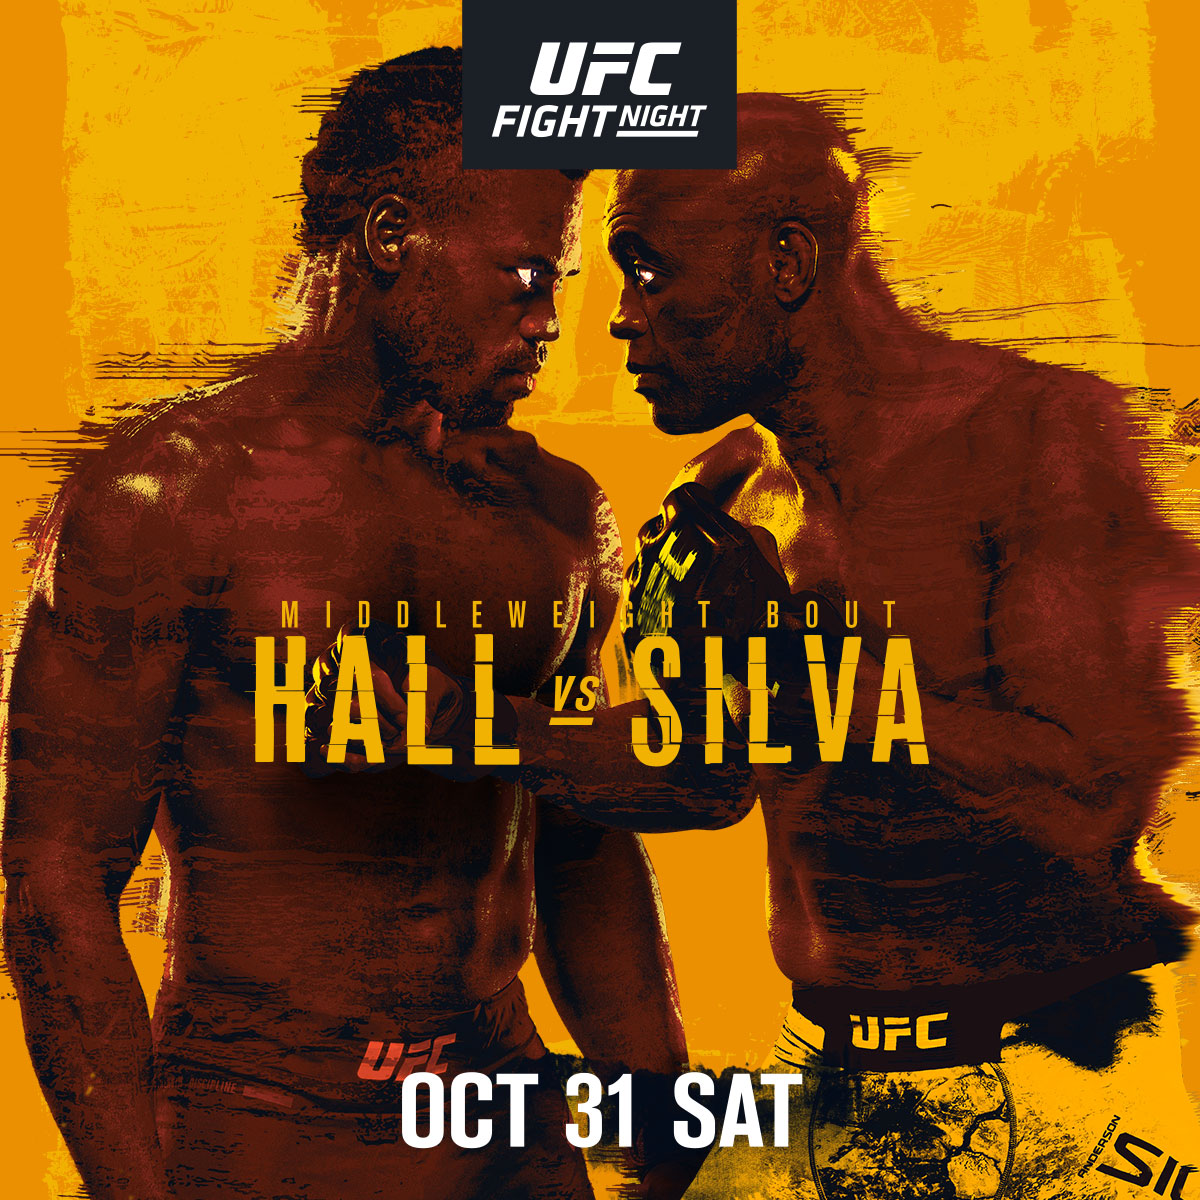 The Spider is back just in time for Halloween!! 🕷🎃  Anderson Silva faces Uriah Hall in our #UFCVegas12 main event Saturday night 👊 https://t.co/MTRcIZXgXD